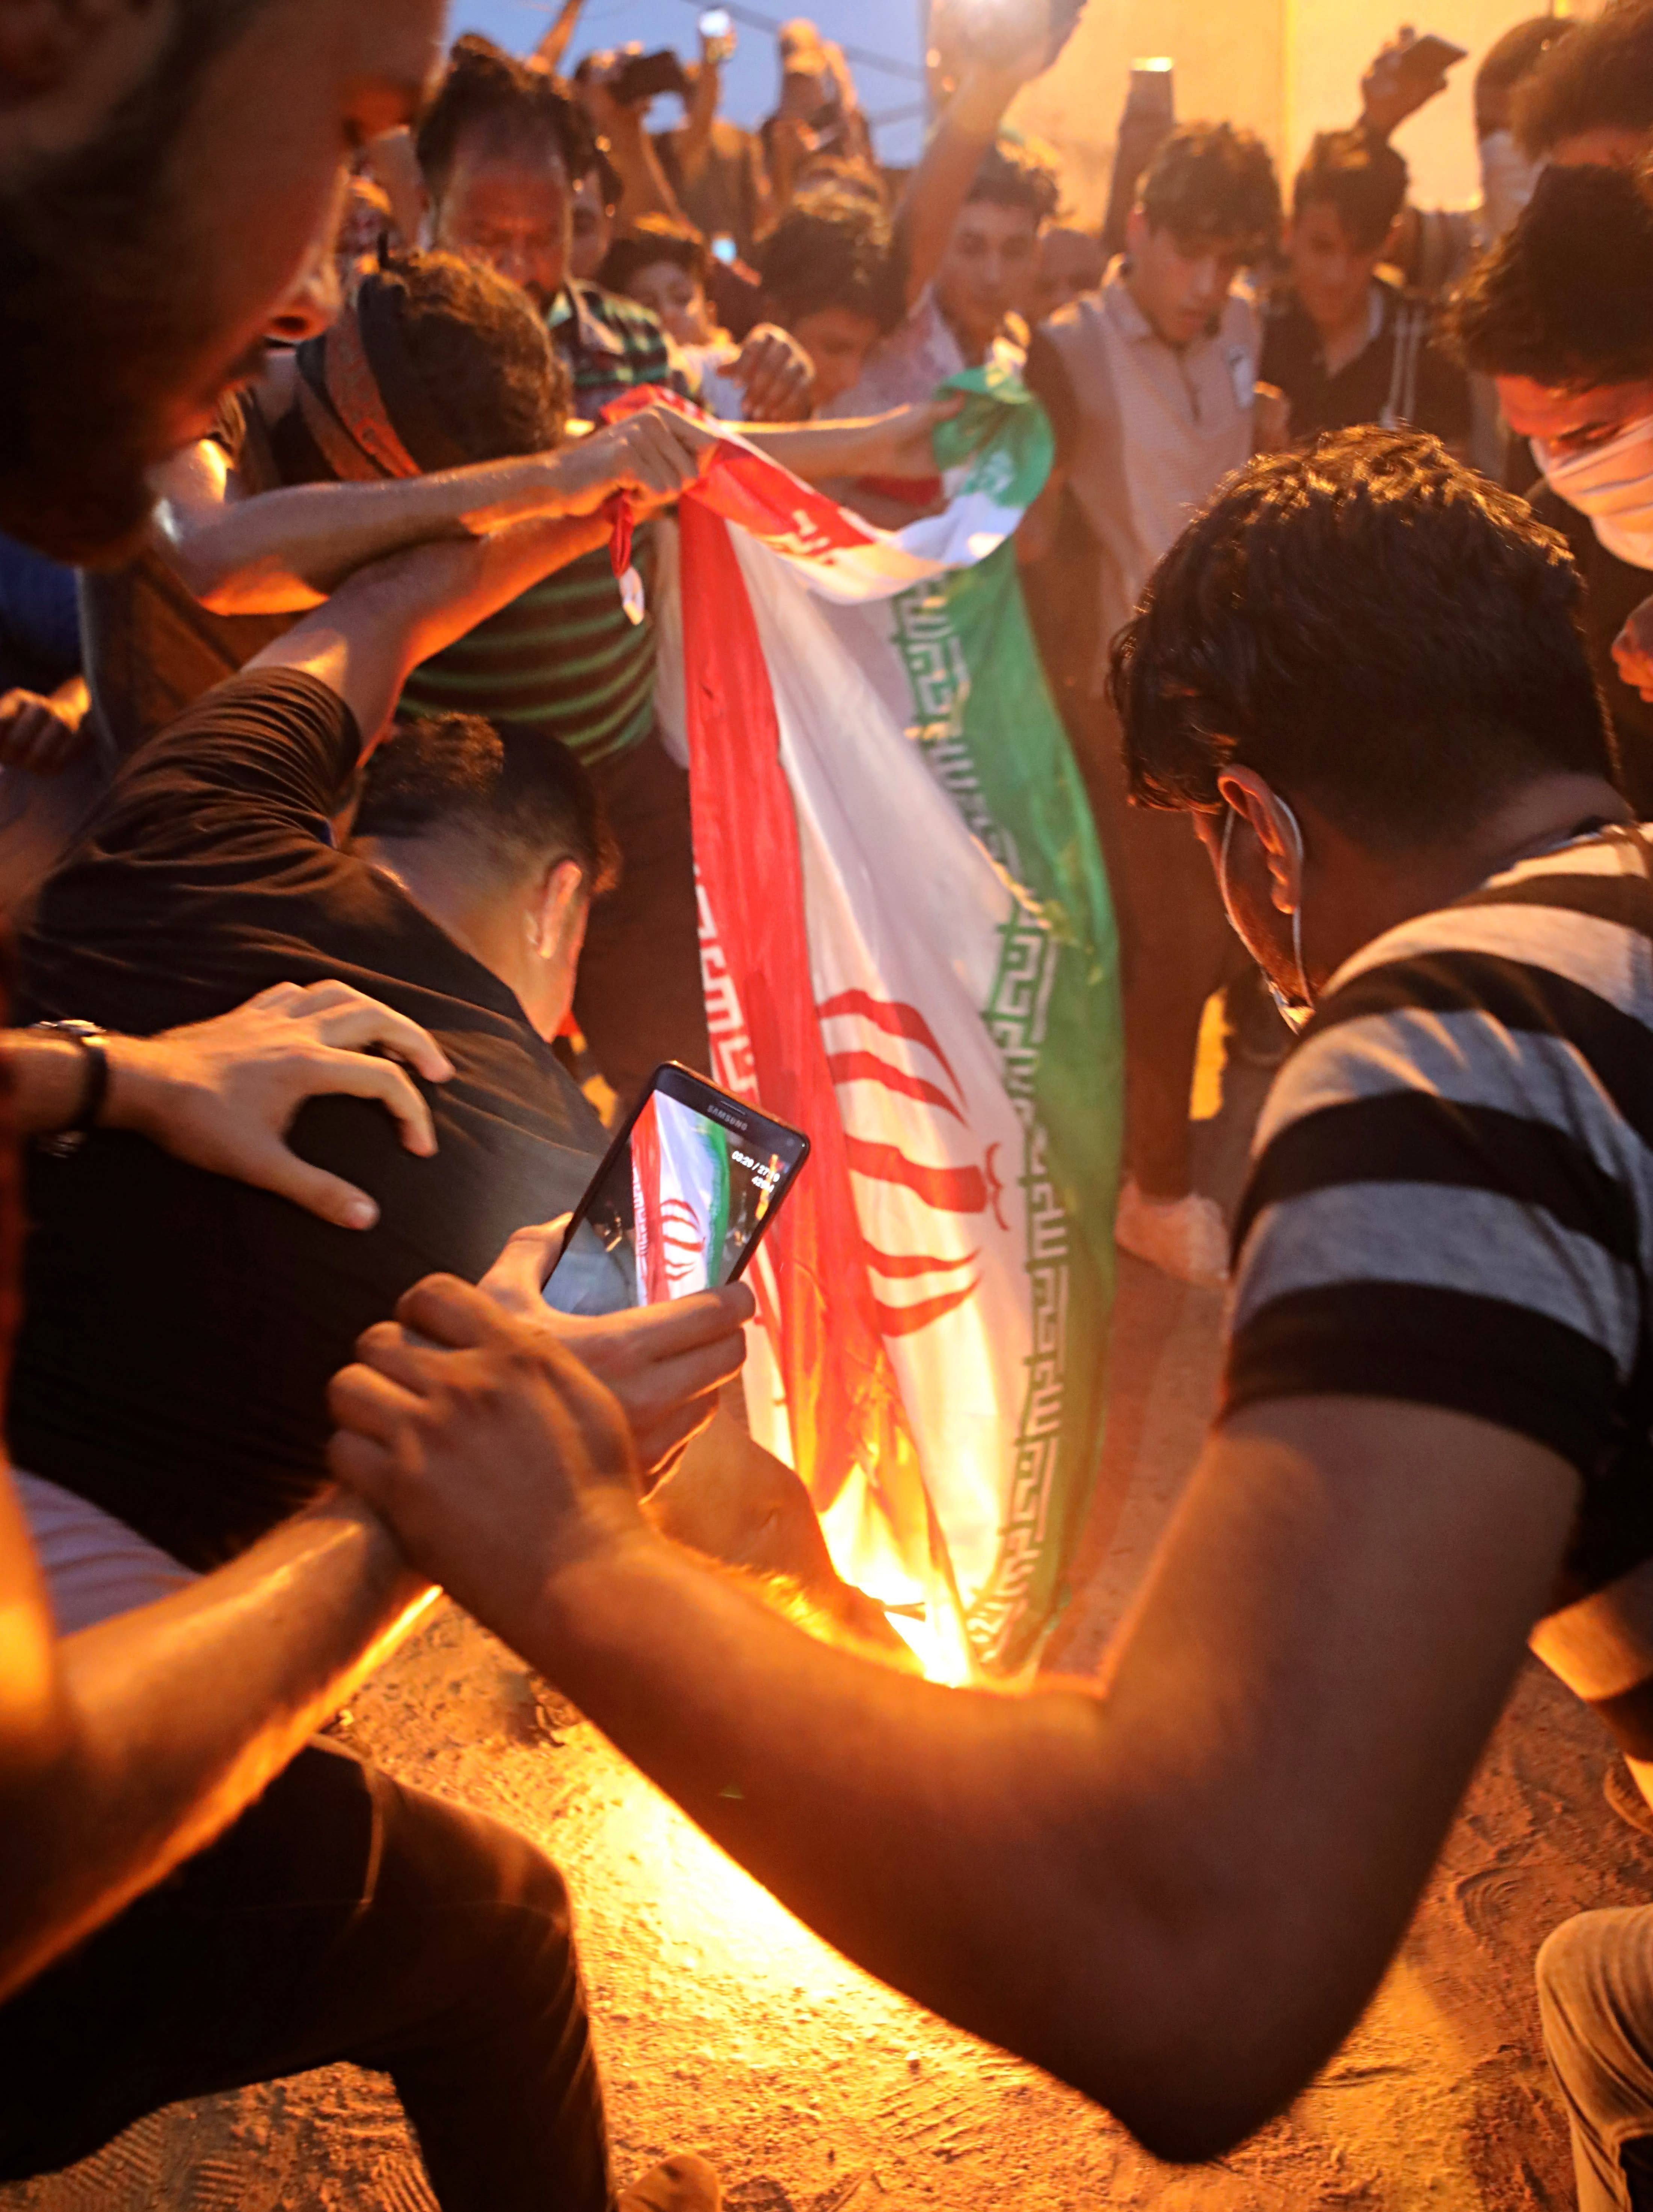 FILE - In this Friday, Sept. 7, 2018 file photo, protesters burn an Iranian flag after storming and burning the Iranian consulate building in Basra, Iraq. A falsely captioned version of this photo began circulating on social media as protests escalated in Iraq in early October 2019, incorrectly claiming that it shows protesters burning an Iranian flag in Baghdad as Iraqis held anti-government protests around the country. (AP Photo/Nabil al-Jurani, File)